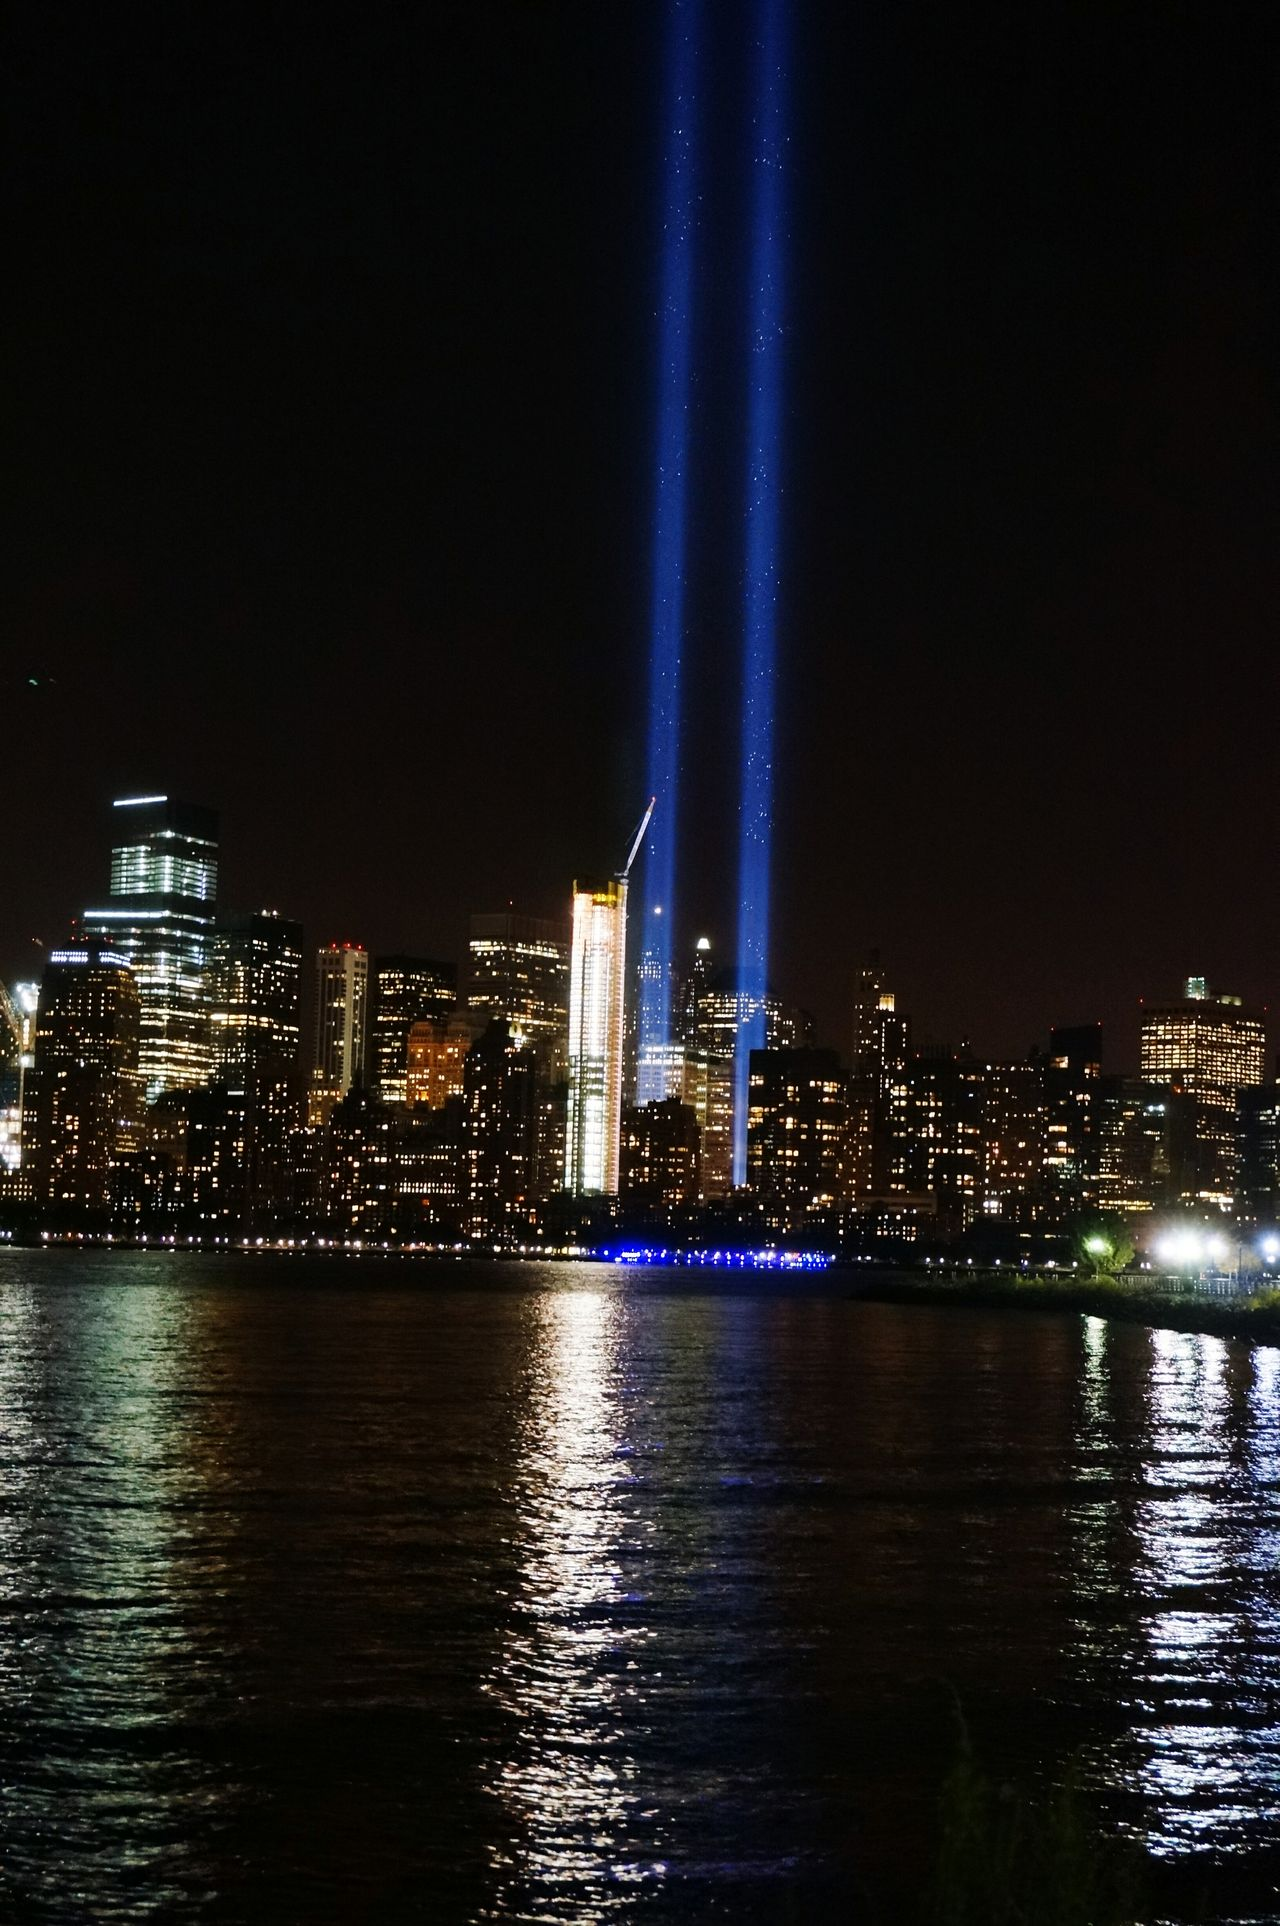 9-11 Eyem Best Shots Newyorkcity Cityscapes Night Photography Popular Photos